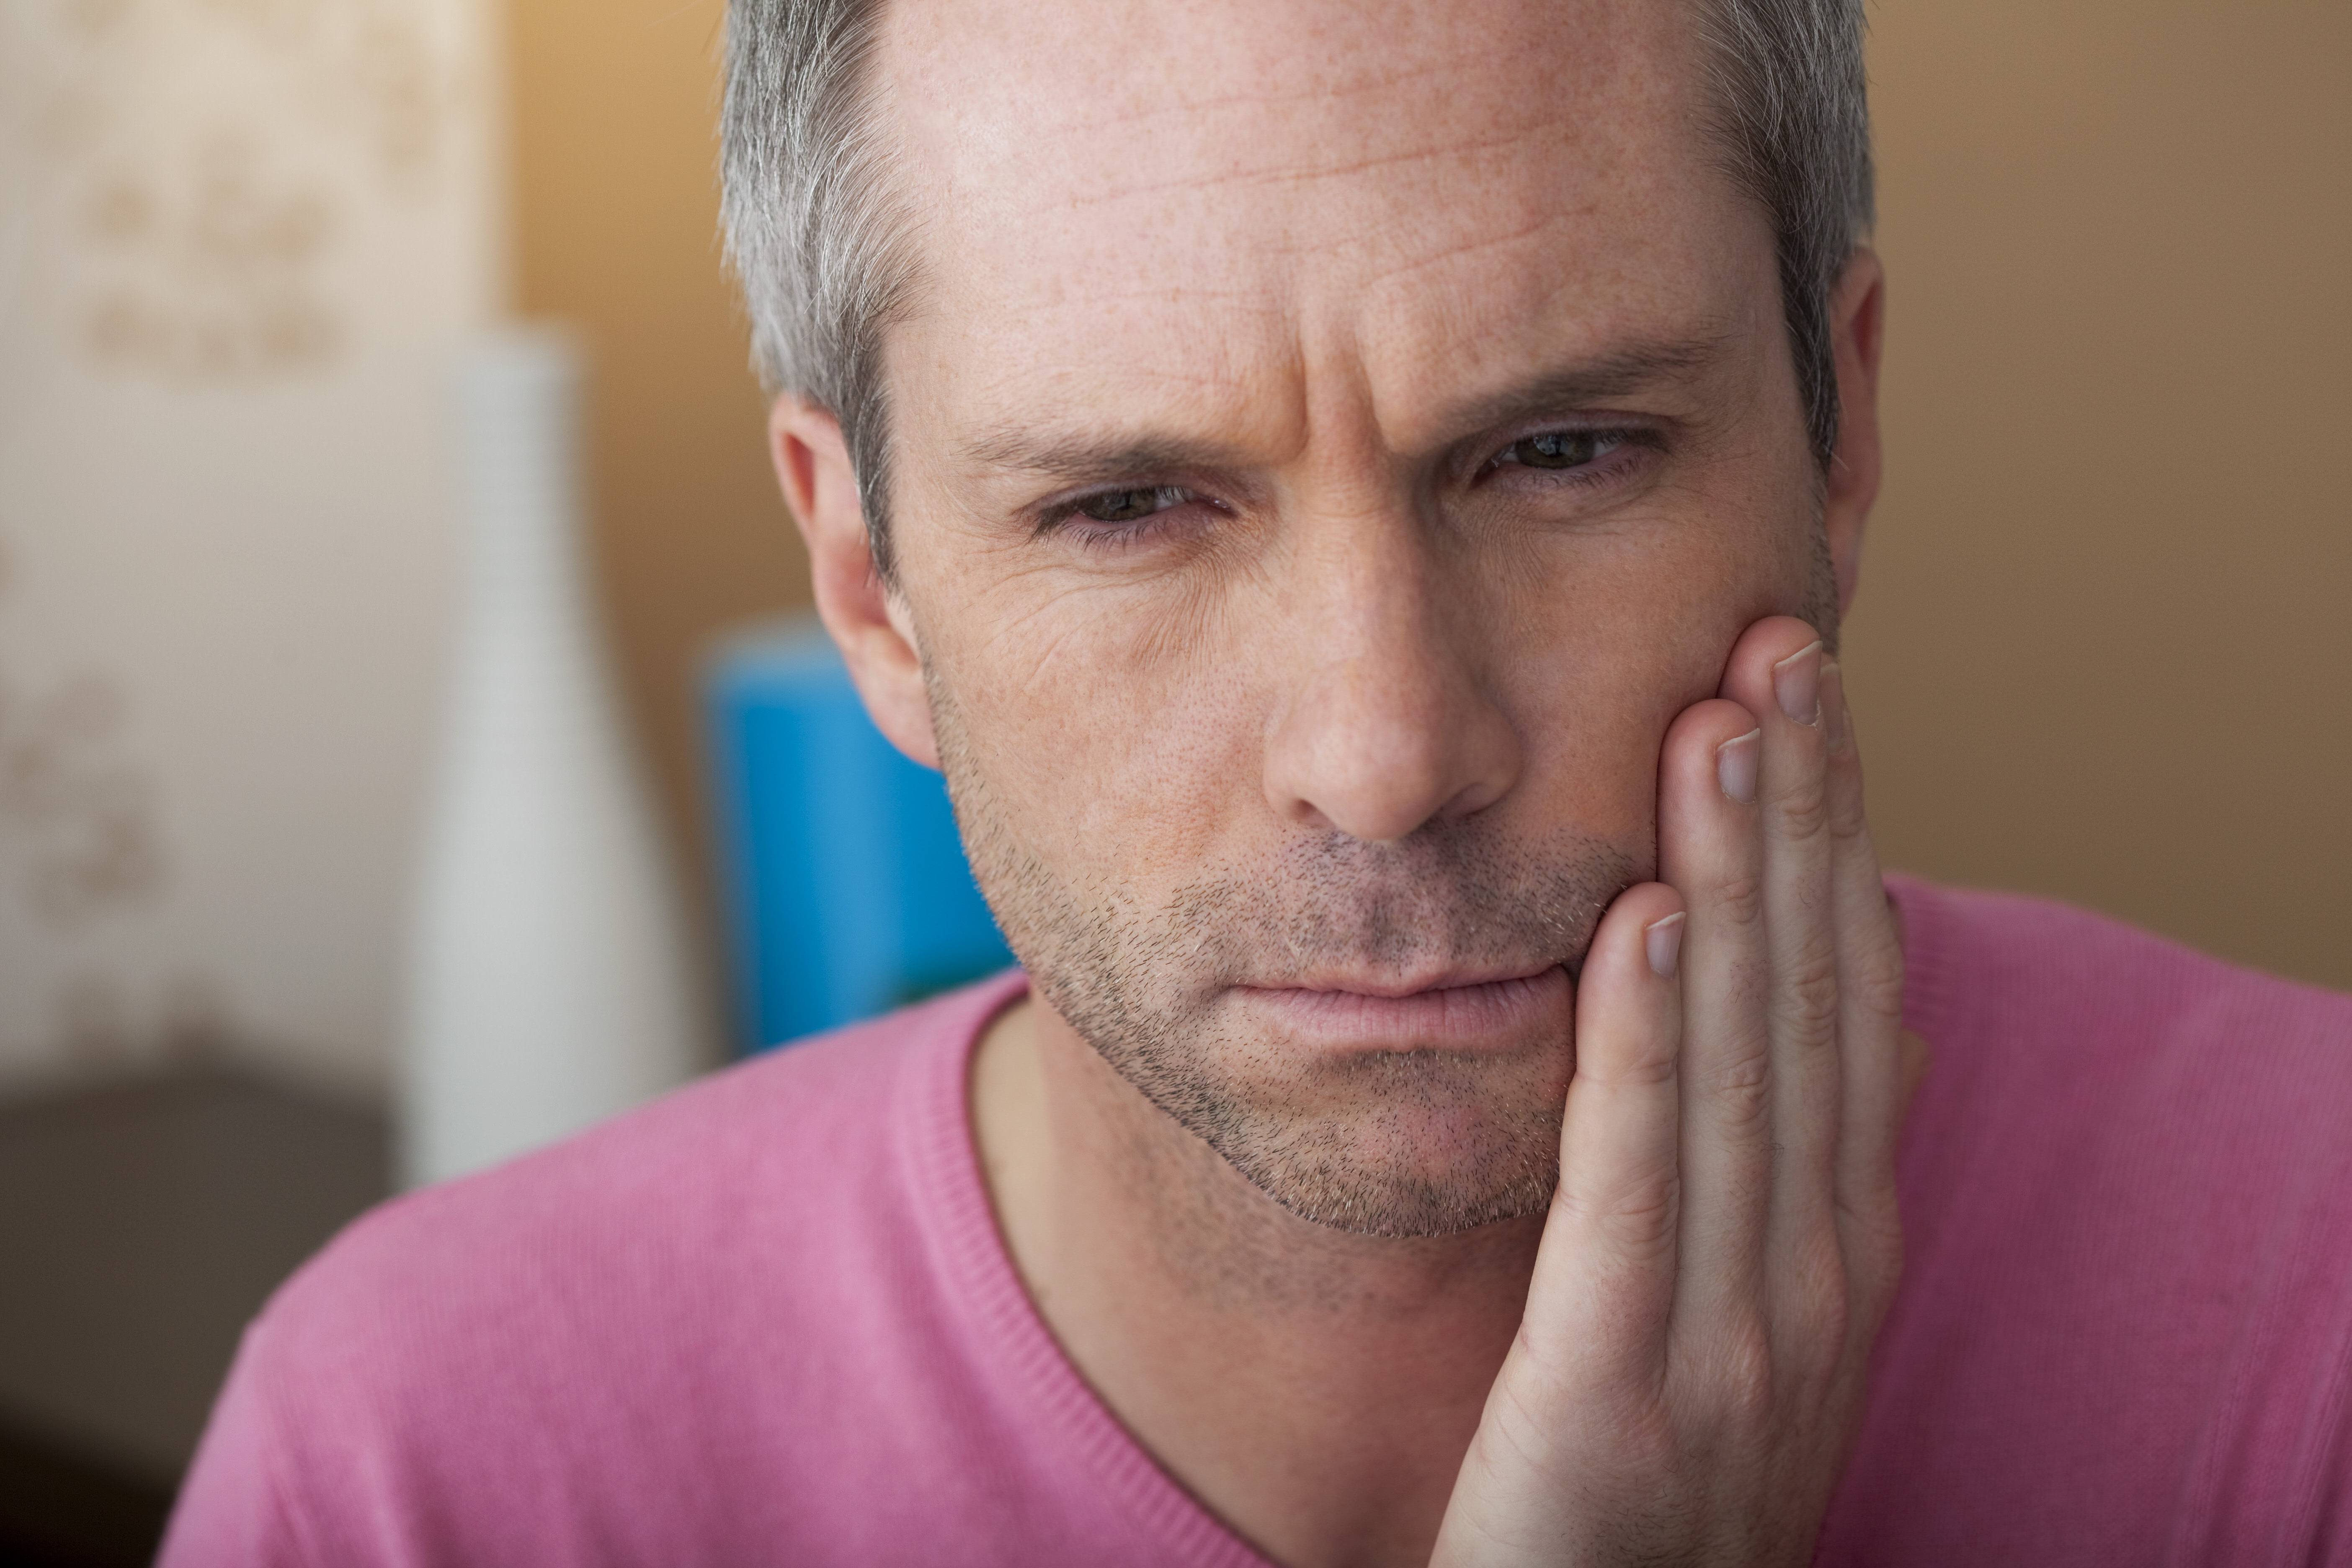 How Stress Can Affect Your Mouth and Dental Health